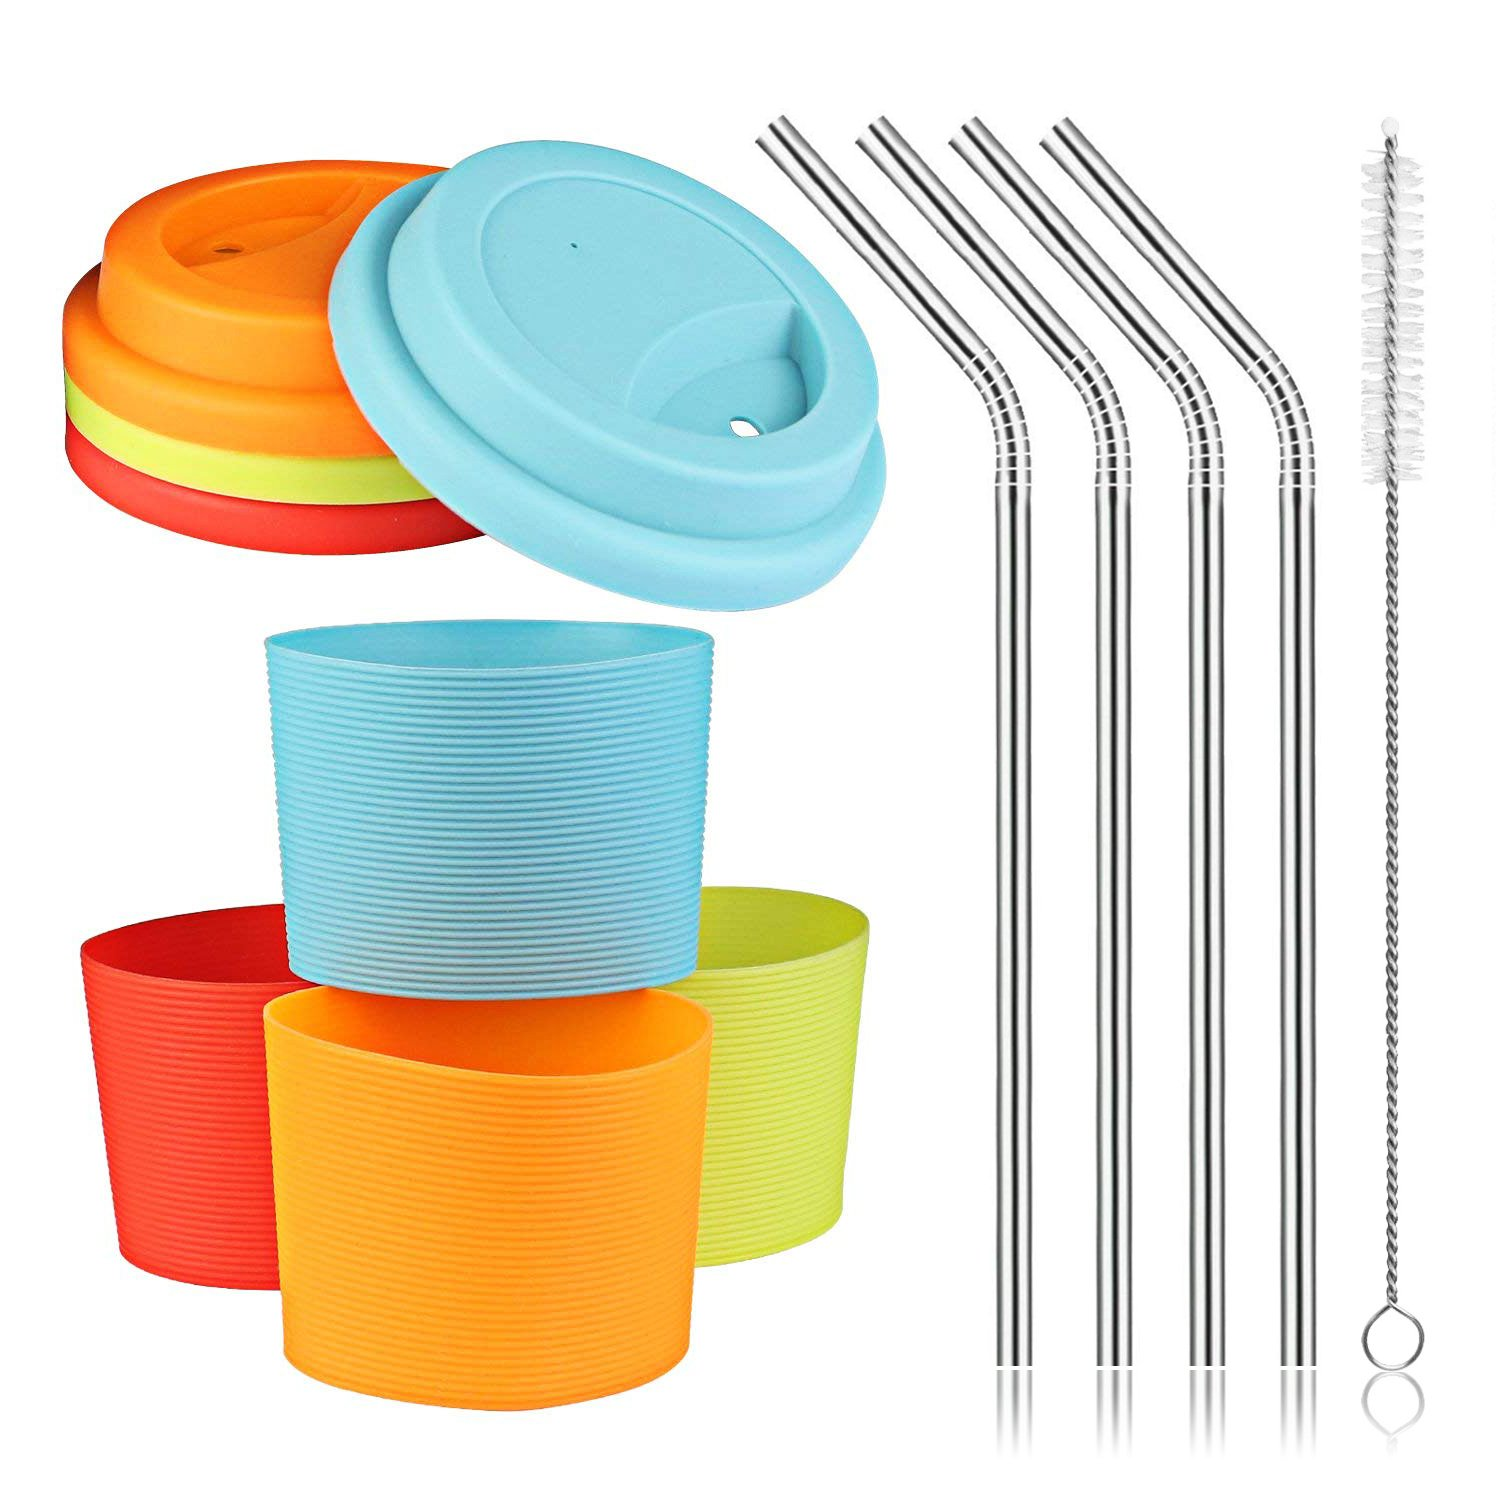 Silicone Sleeves and Lids with Stainless Steel Straws Set, Kereda 4 Pack Non-slip Heat Resistant Cup Covers Multicoloured 7.6cm Dia for 470ml Coffee Mugs/Tumblers/Rambler B07F2C1RHL  sleeves & lids with straws (16oz.)